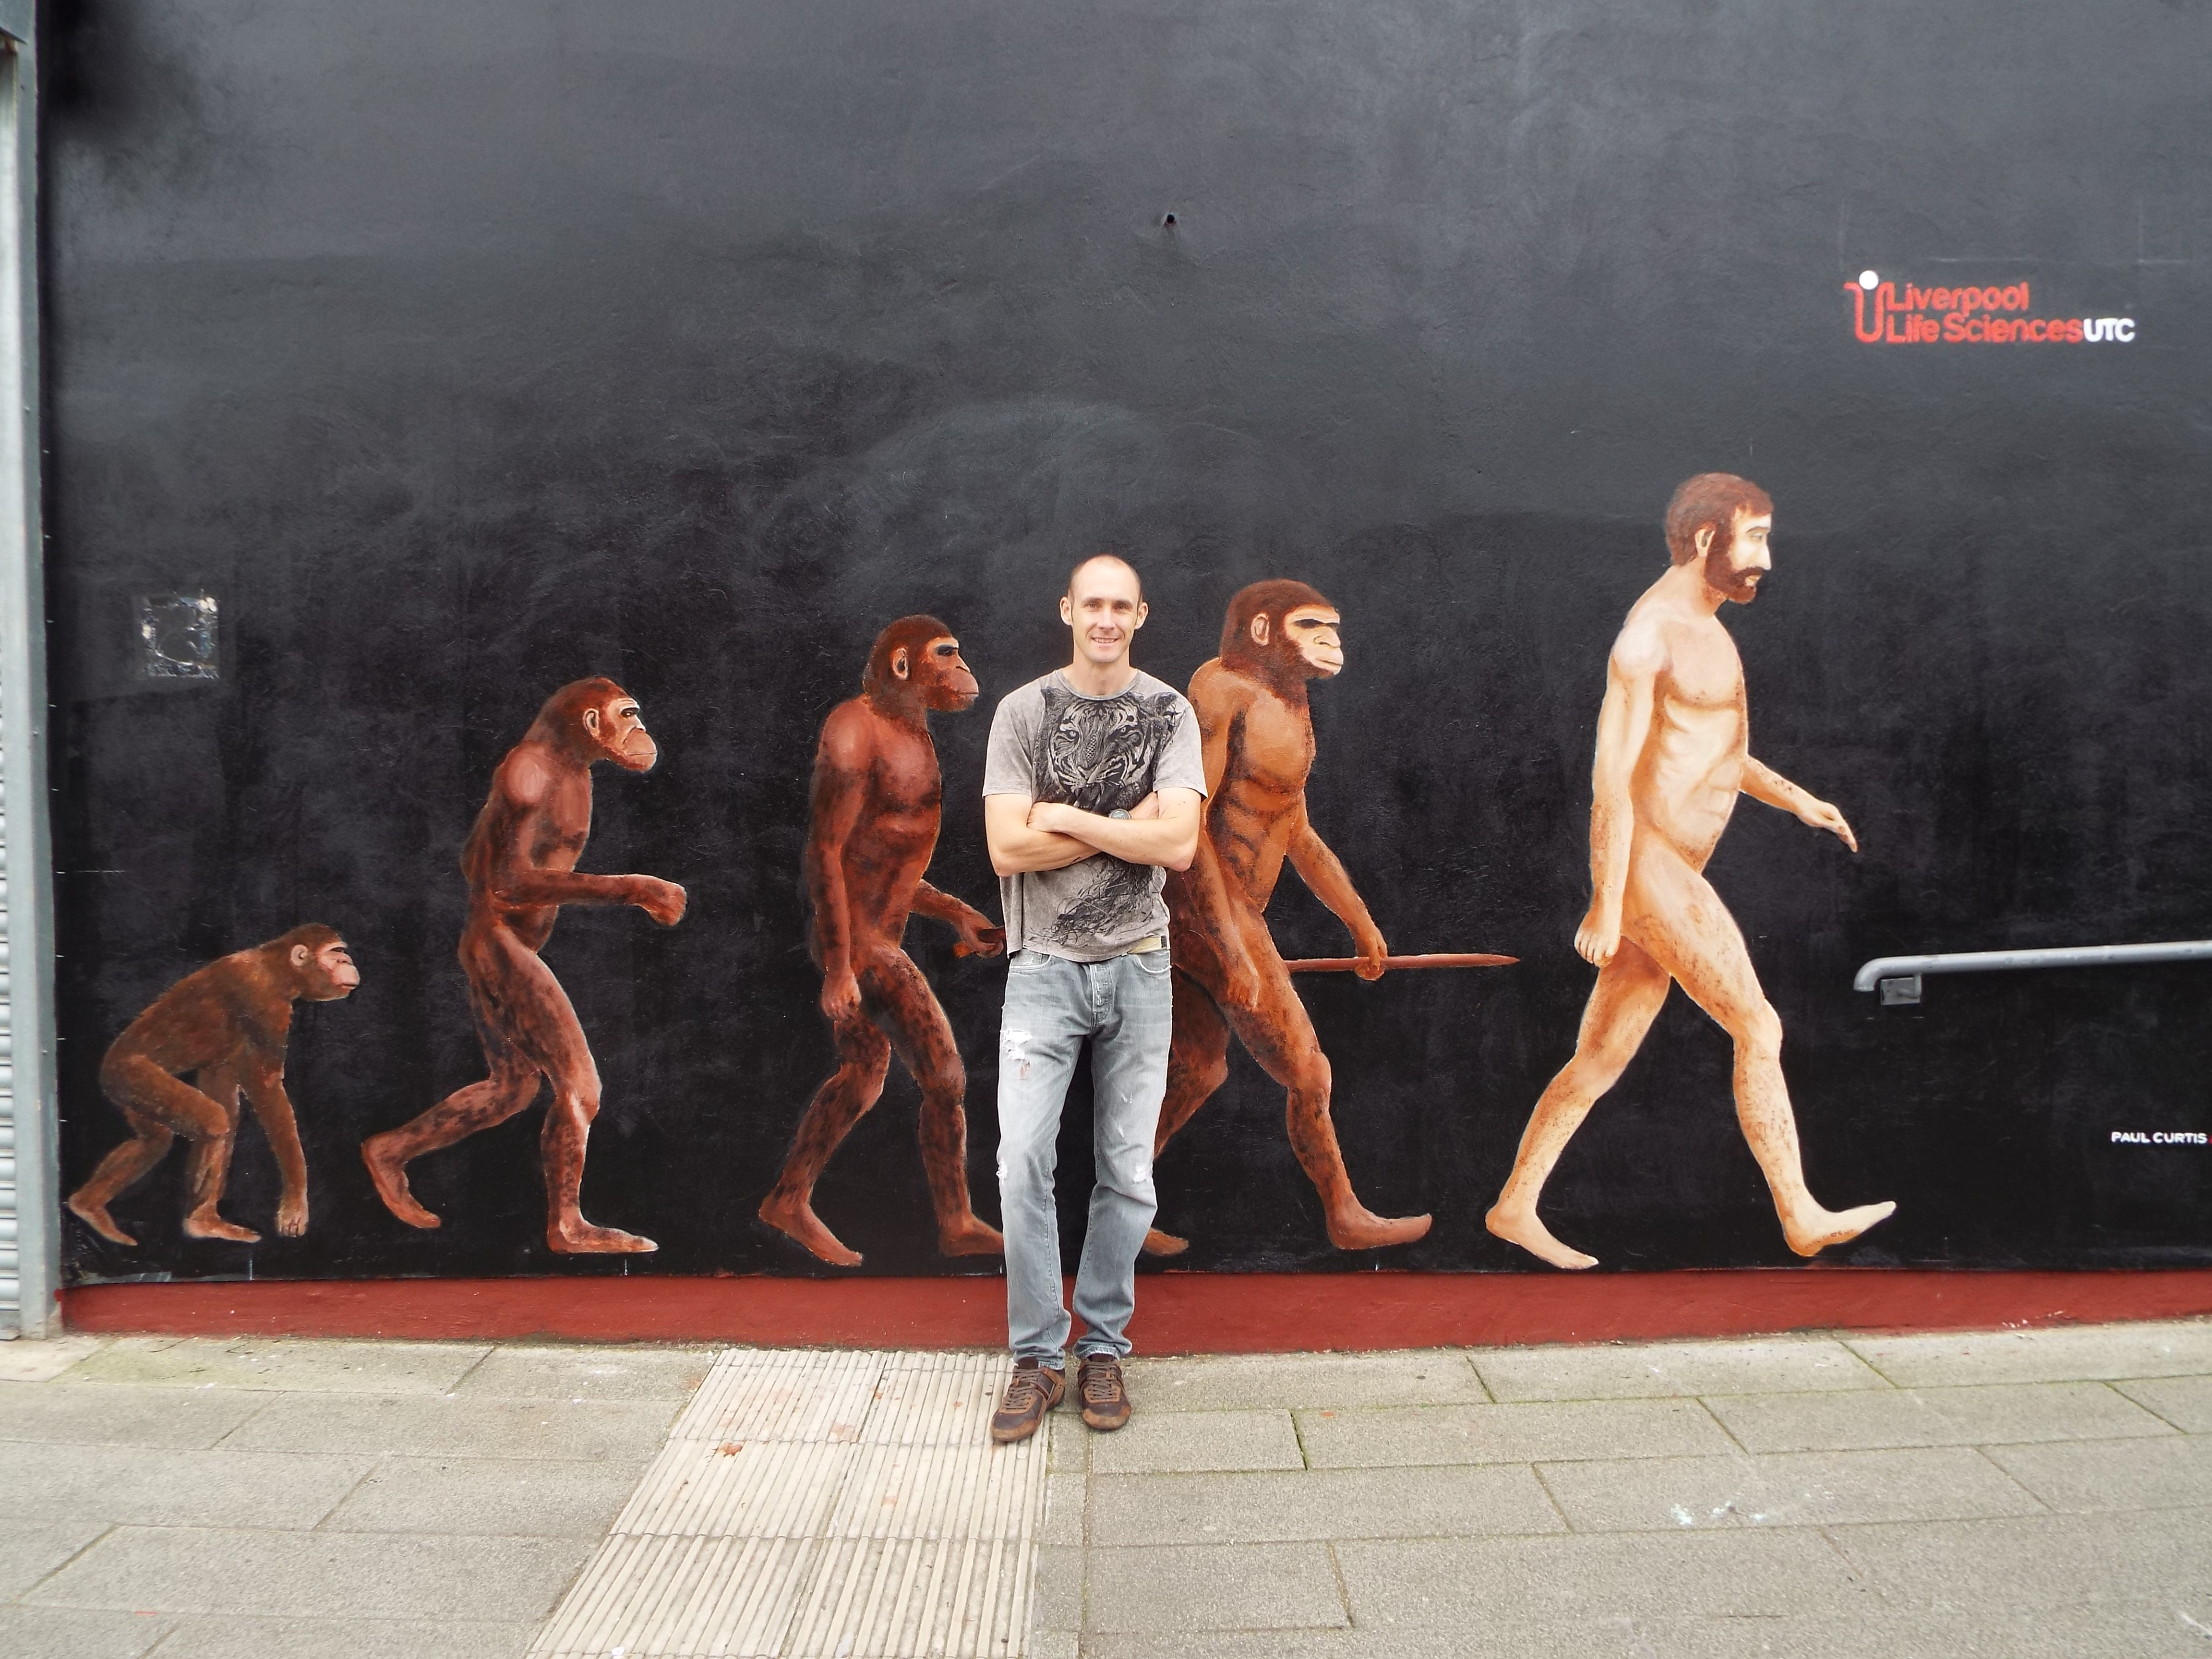 Paul Curtis with Evolution of Man